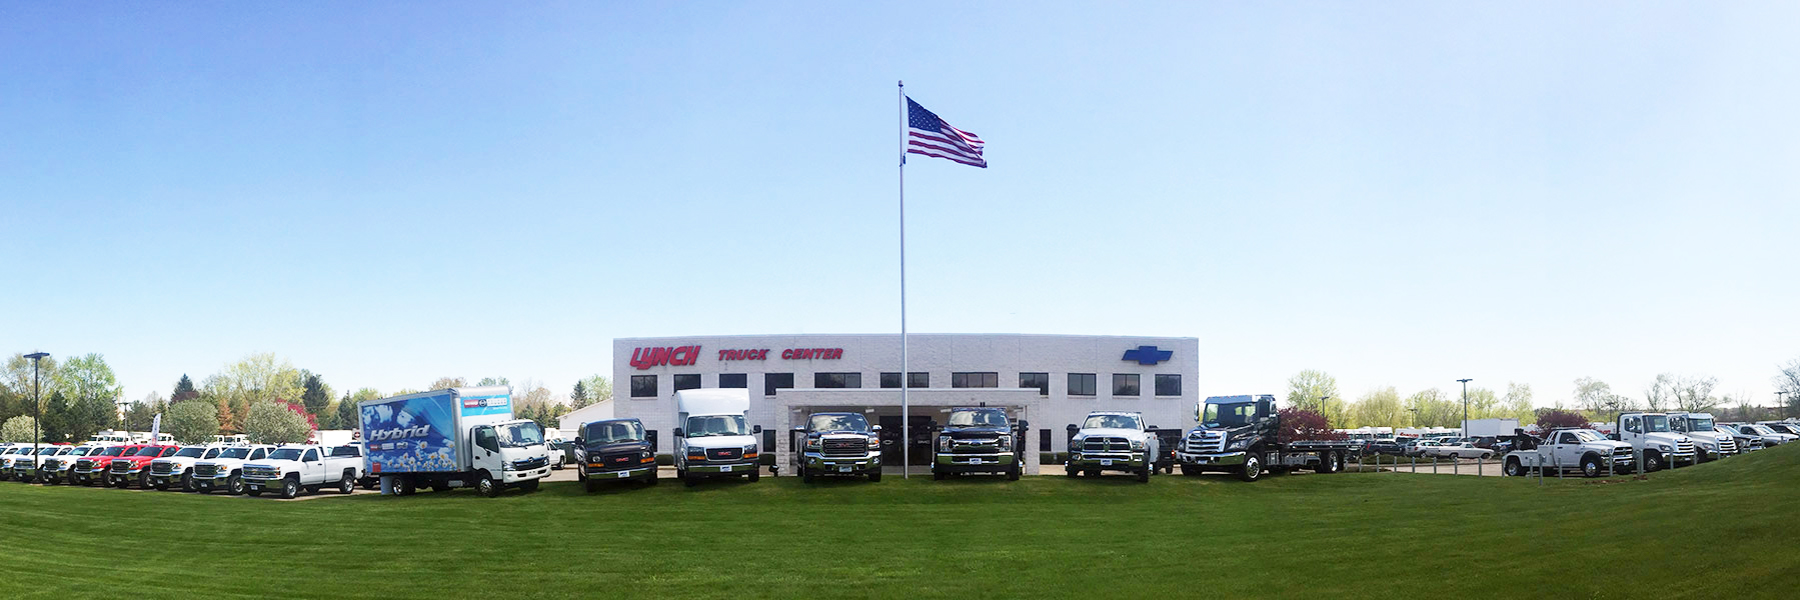 lynch-truck-center-waterford